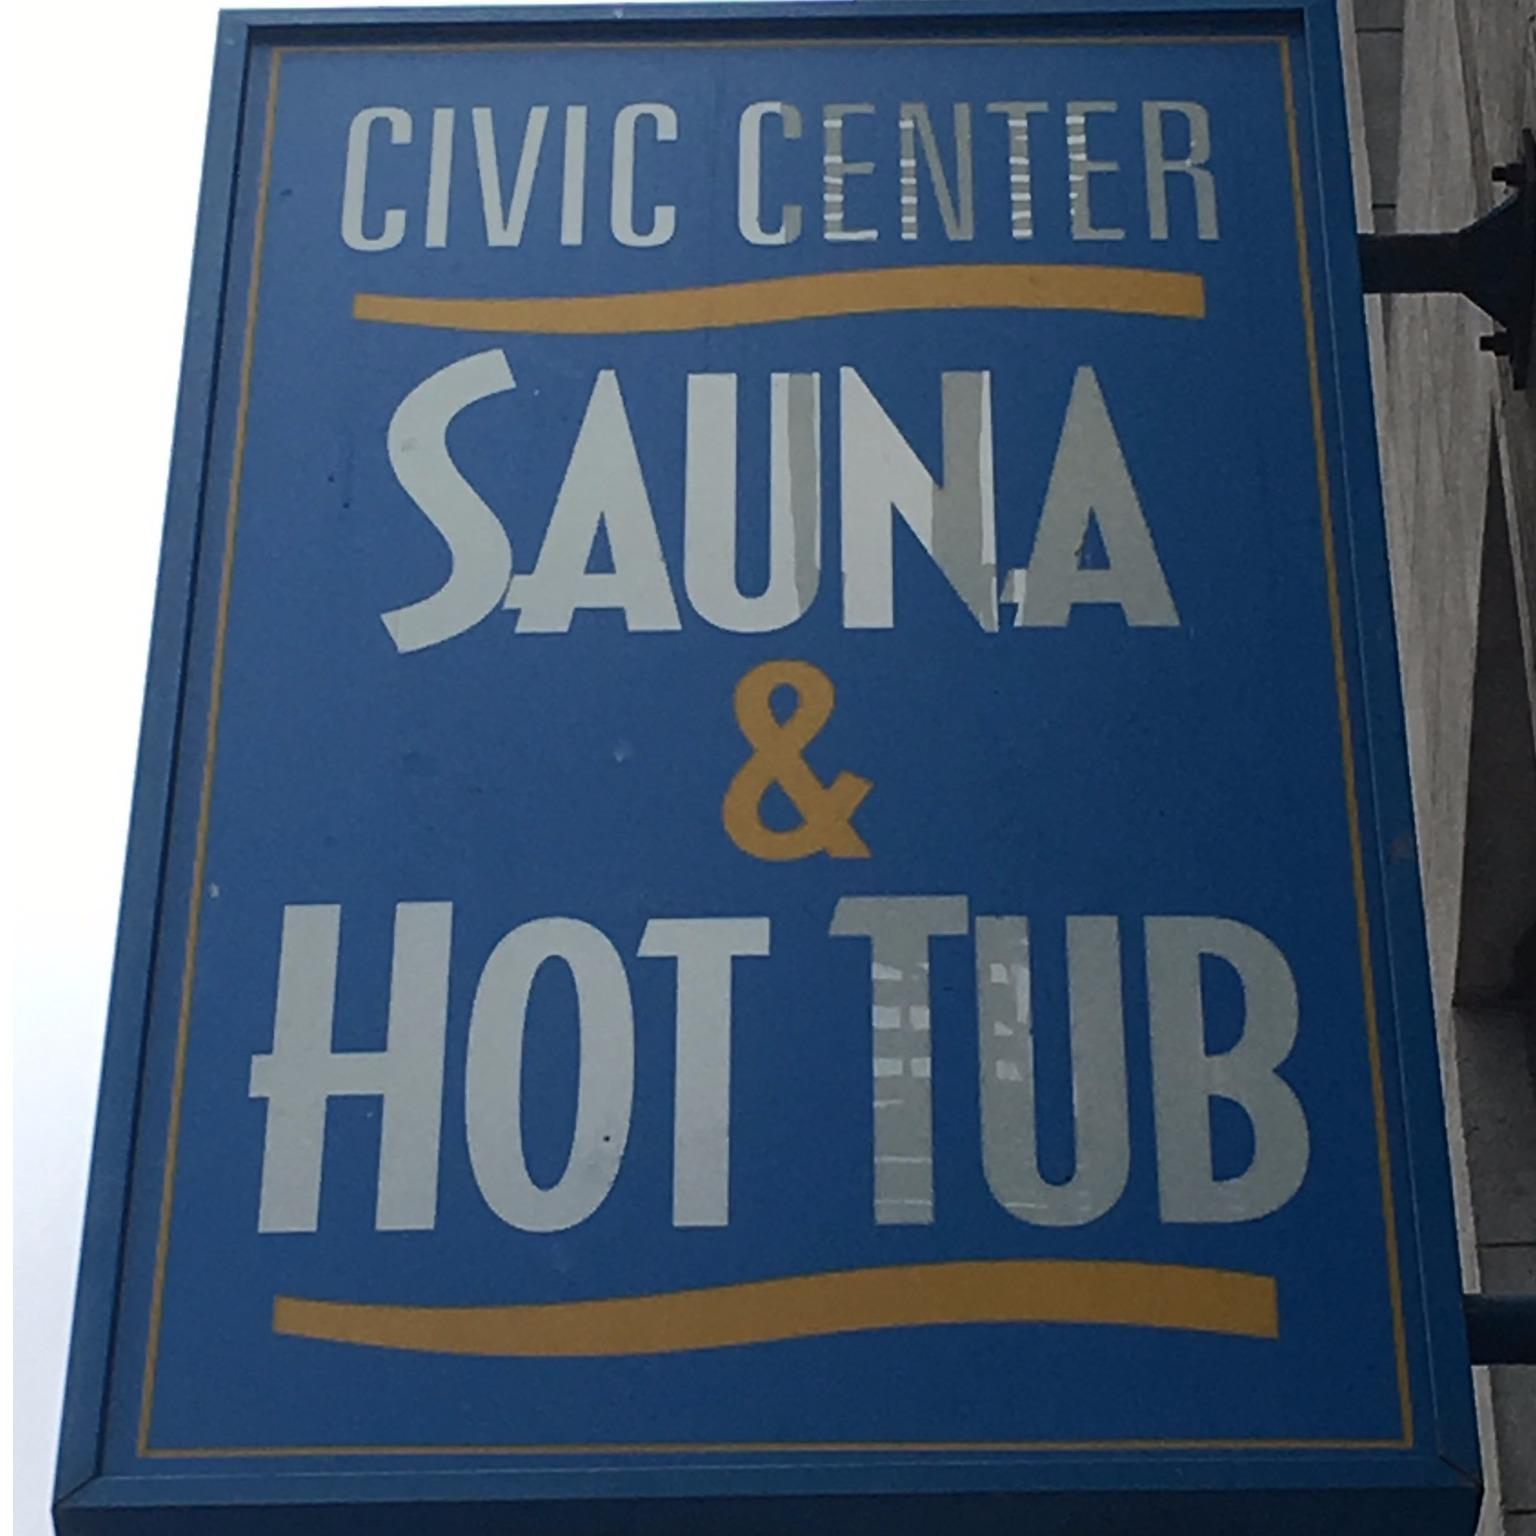 Civic Center Sauna & Hot Tub - San Francisco, CA - Swimming Pools & Spas